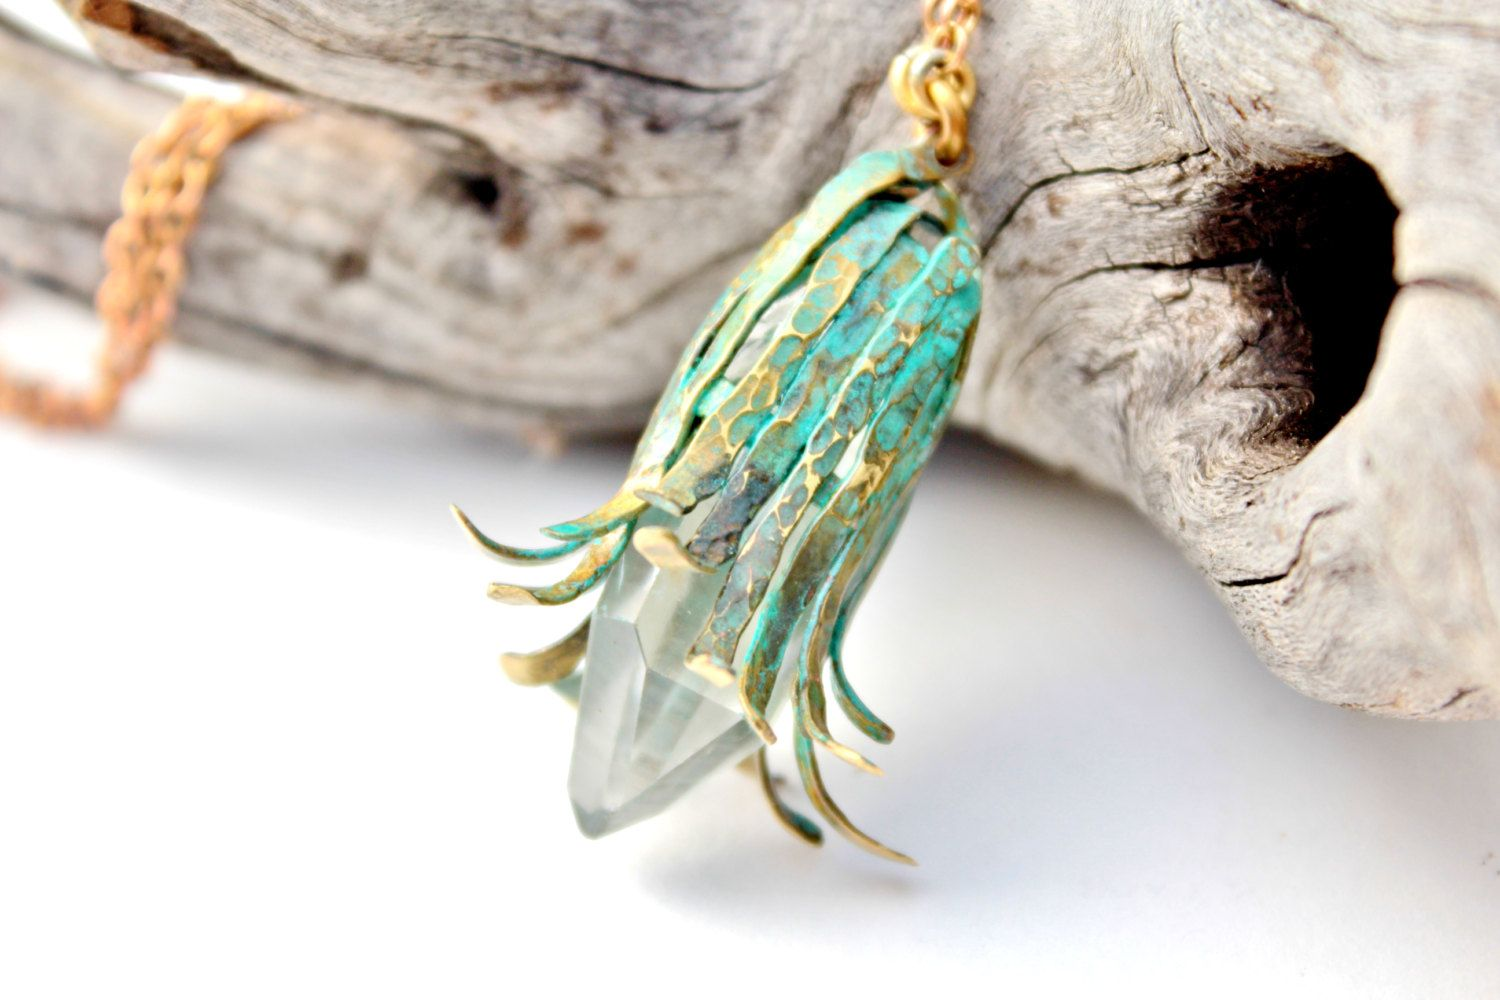 Raw Crystal Quartz and Hammered Brass Pendant, Natural Clear Crystal, Organic Jewelry, Boho Chic Necklace, Blue Patina. de AshtartJewelry en Etsy